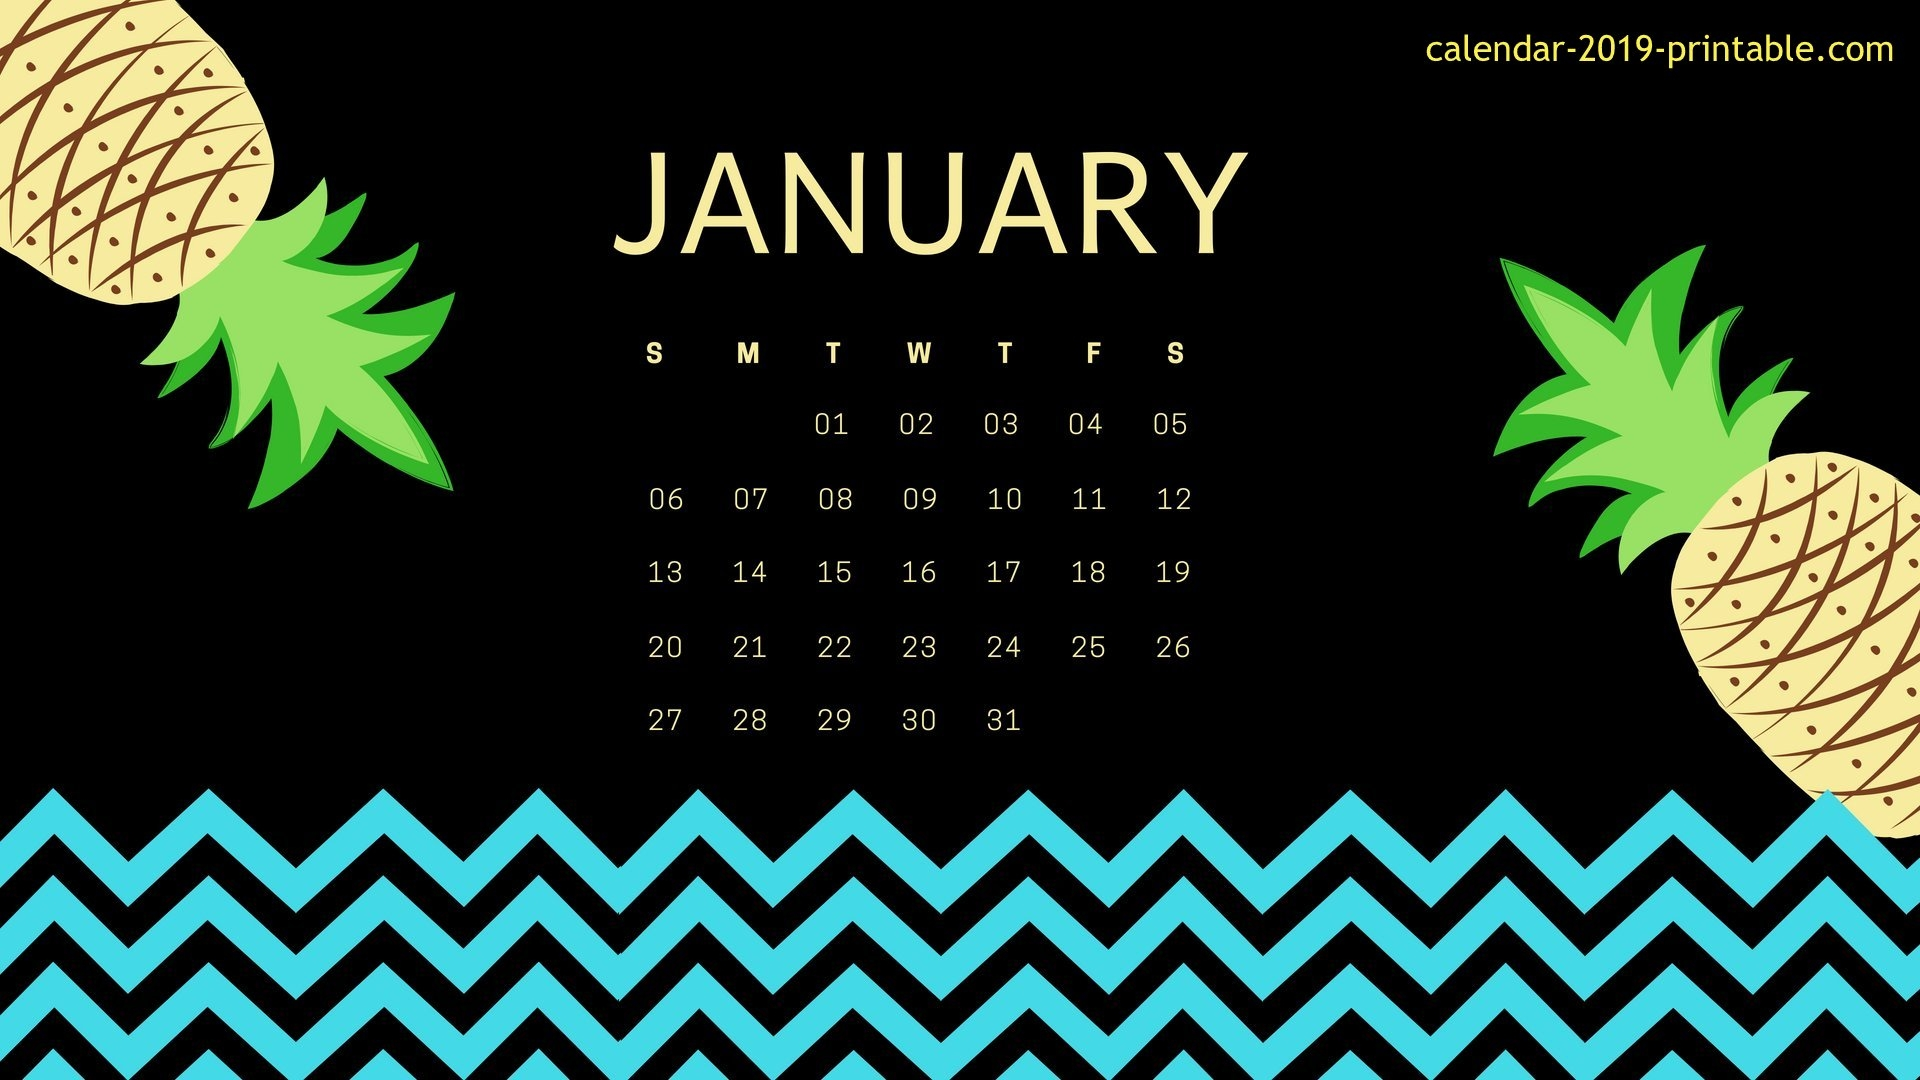 january 2019 calendar desktop wallpapers calendar 2019 printable::January 2019 Desktop Calendar Wallpaper